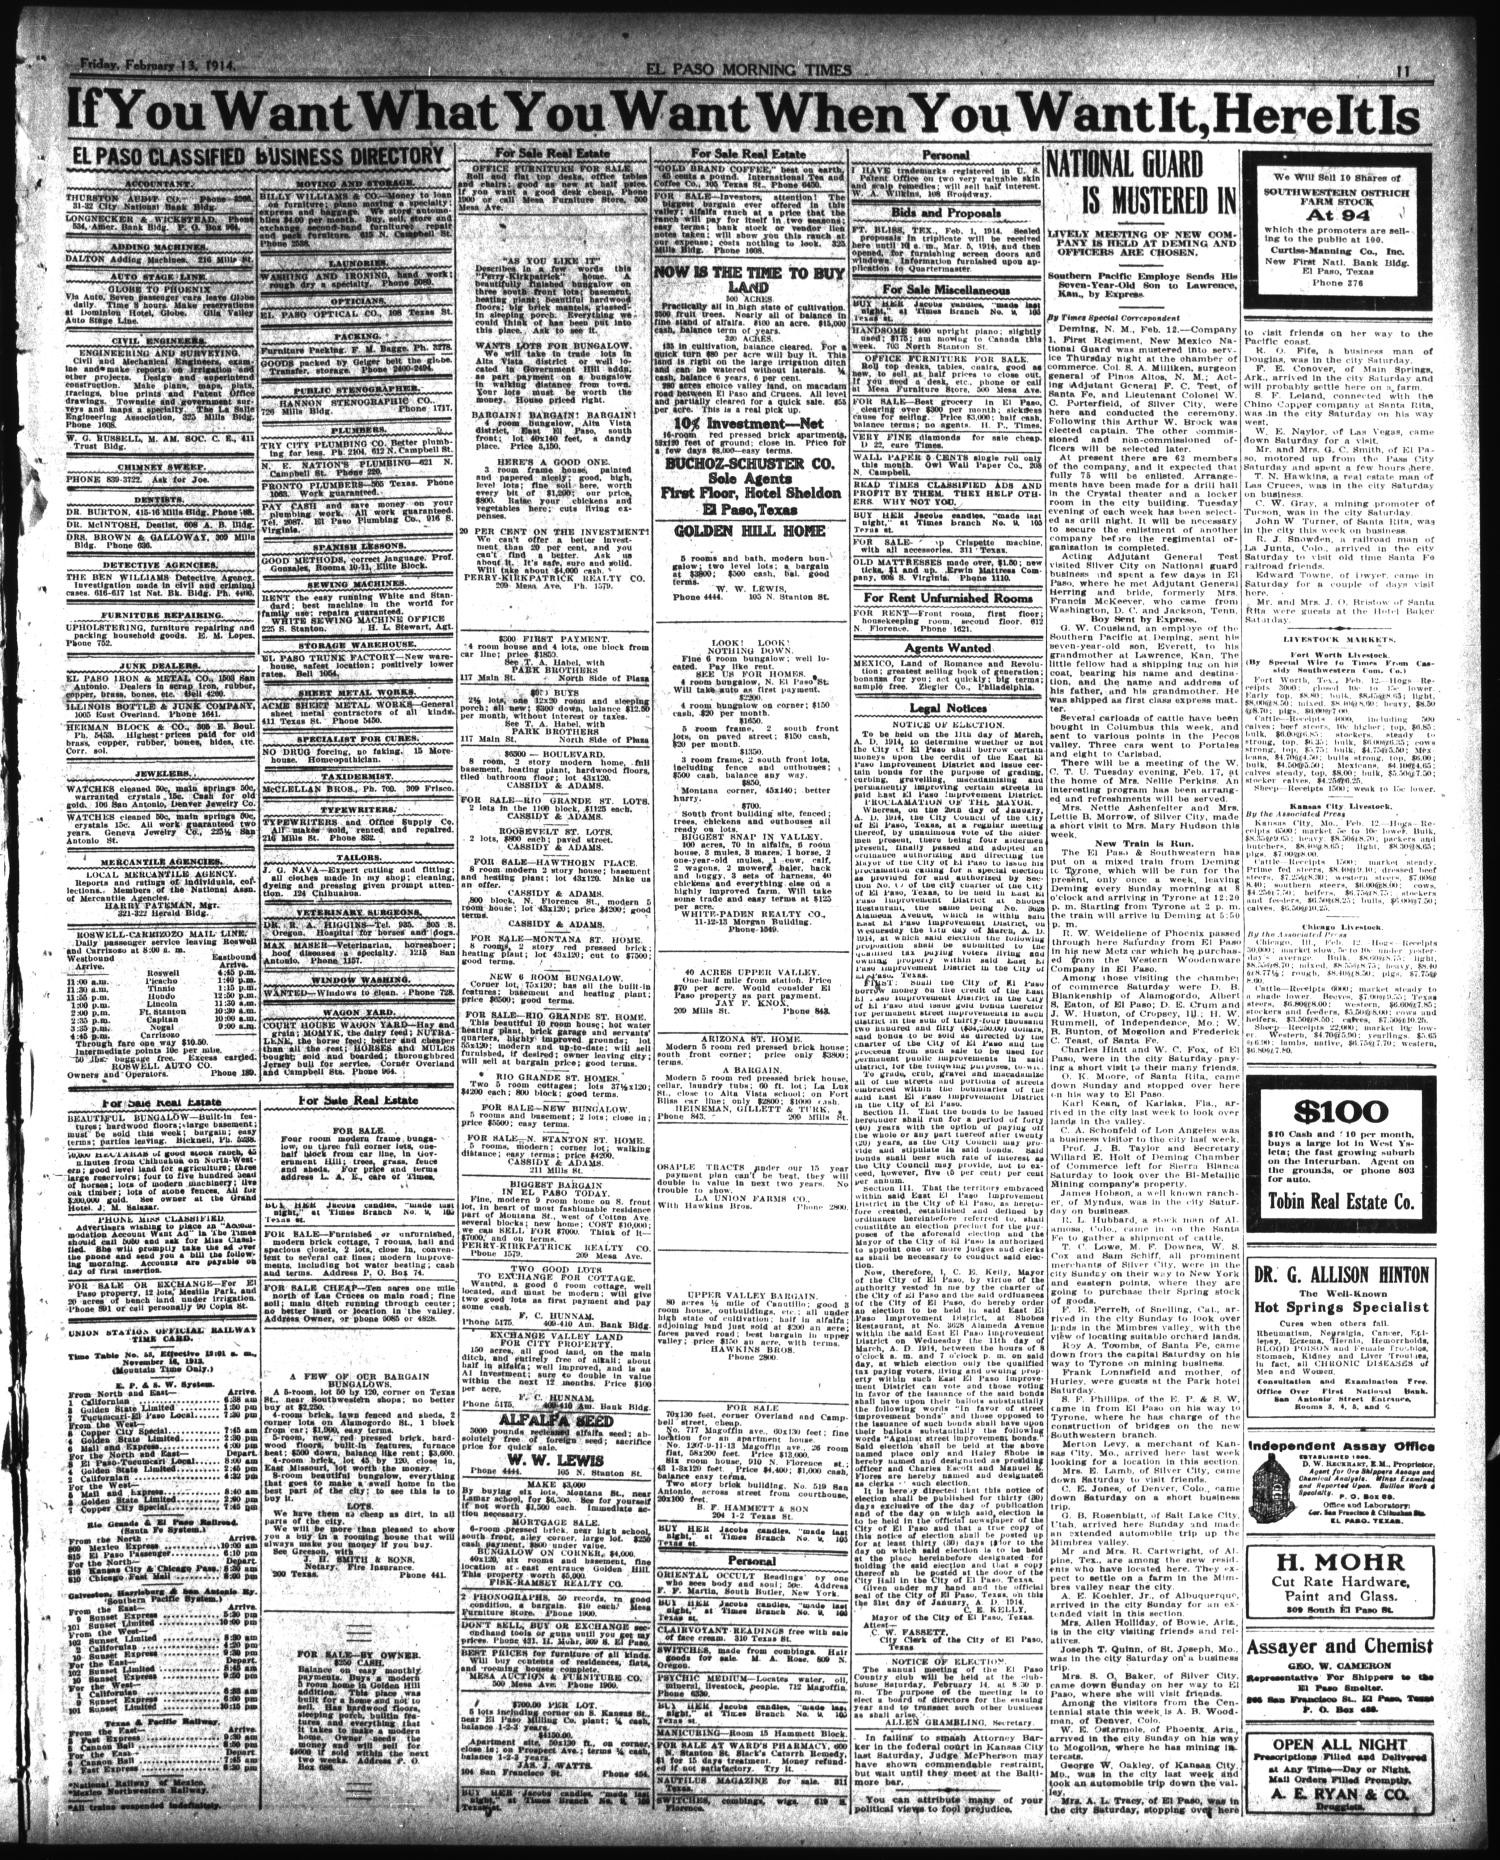 Hardwood Flooring El Paso Tx Of El Paso Morning Times El Paso Tex Vol 34th Year Ed 1 Friday with Regard to El Paso Morning Times El Paso Tex Vol 34th Year Ed 1 Friday February 13 1914 Page 11 Of 12 the Portal to Texas History